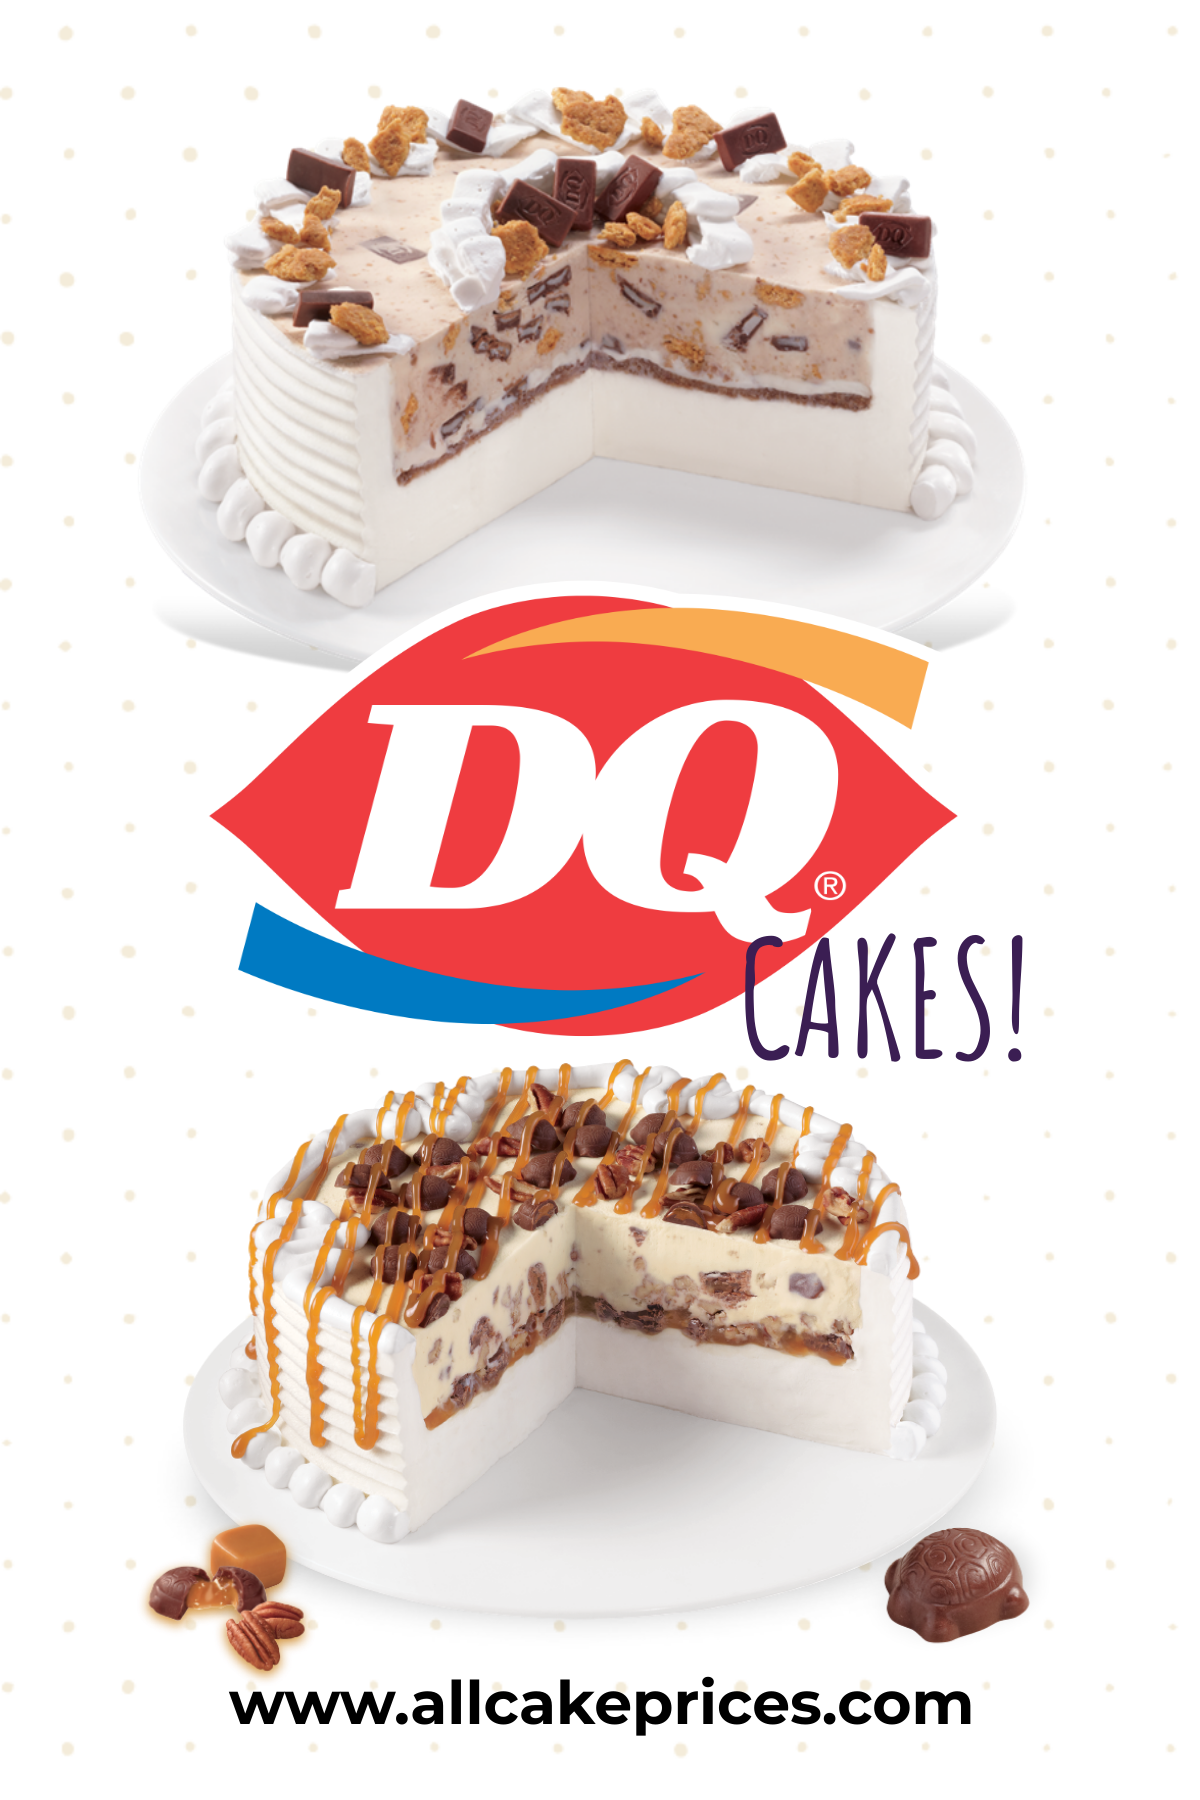 How Much Are Dairy Queen Cakes : dairy, queen, cakes, Dairy, Queen, Offers, Affordable, Cakes, Practically, Occasion., Planning, Birthday, Party,, Shower,, Pricing,, Healthy, Easter, Treats,